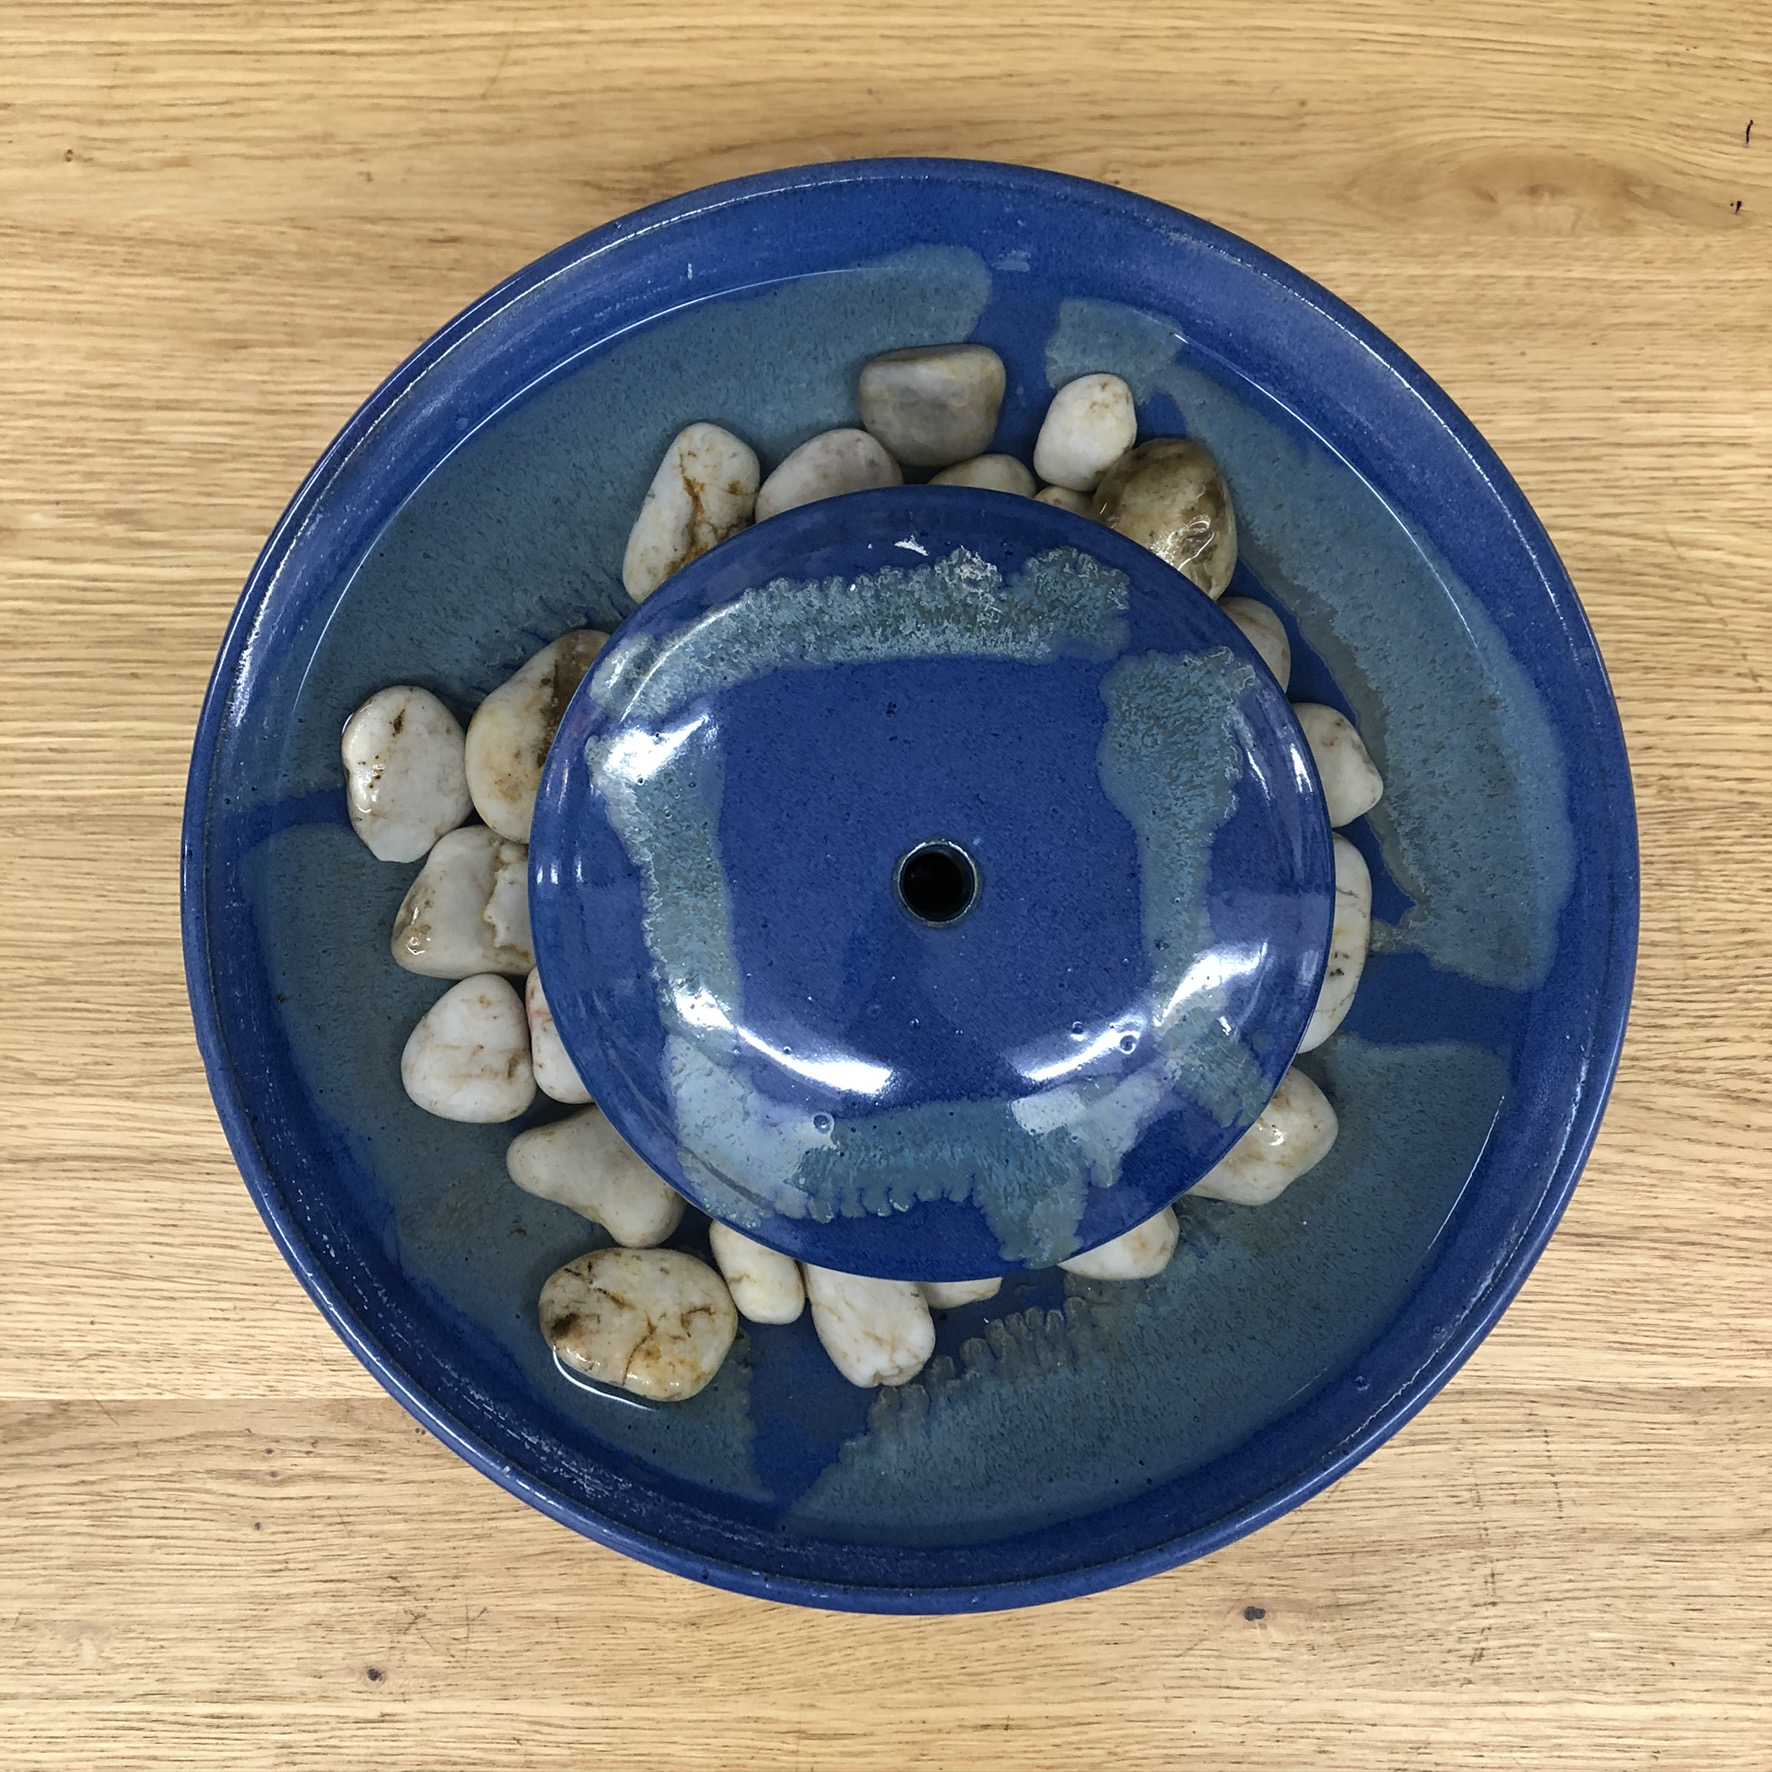 Ceramic tabletop fountain - top view - blue